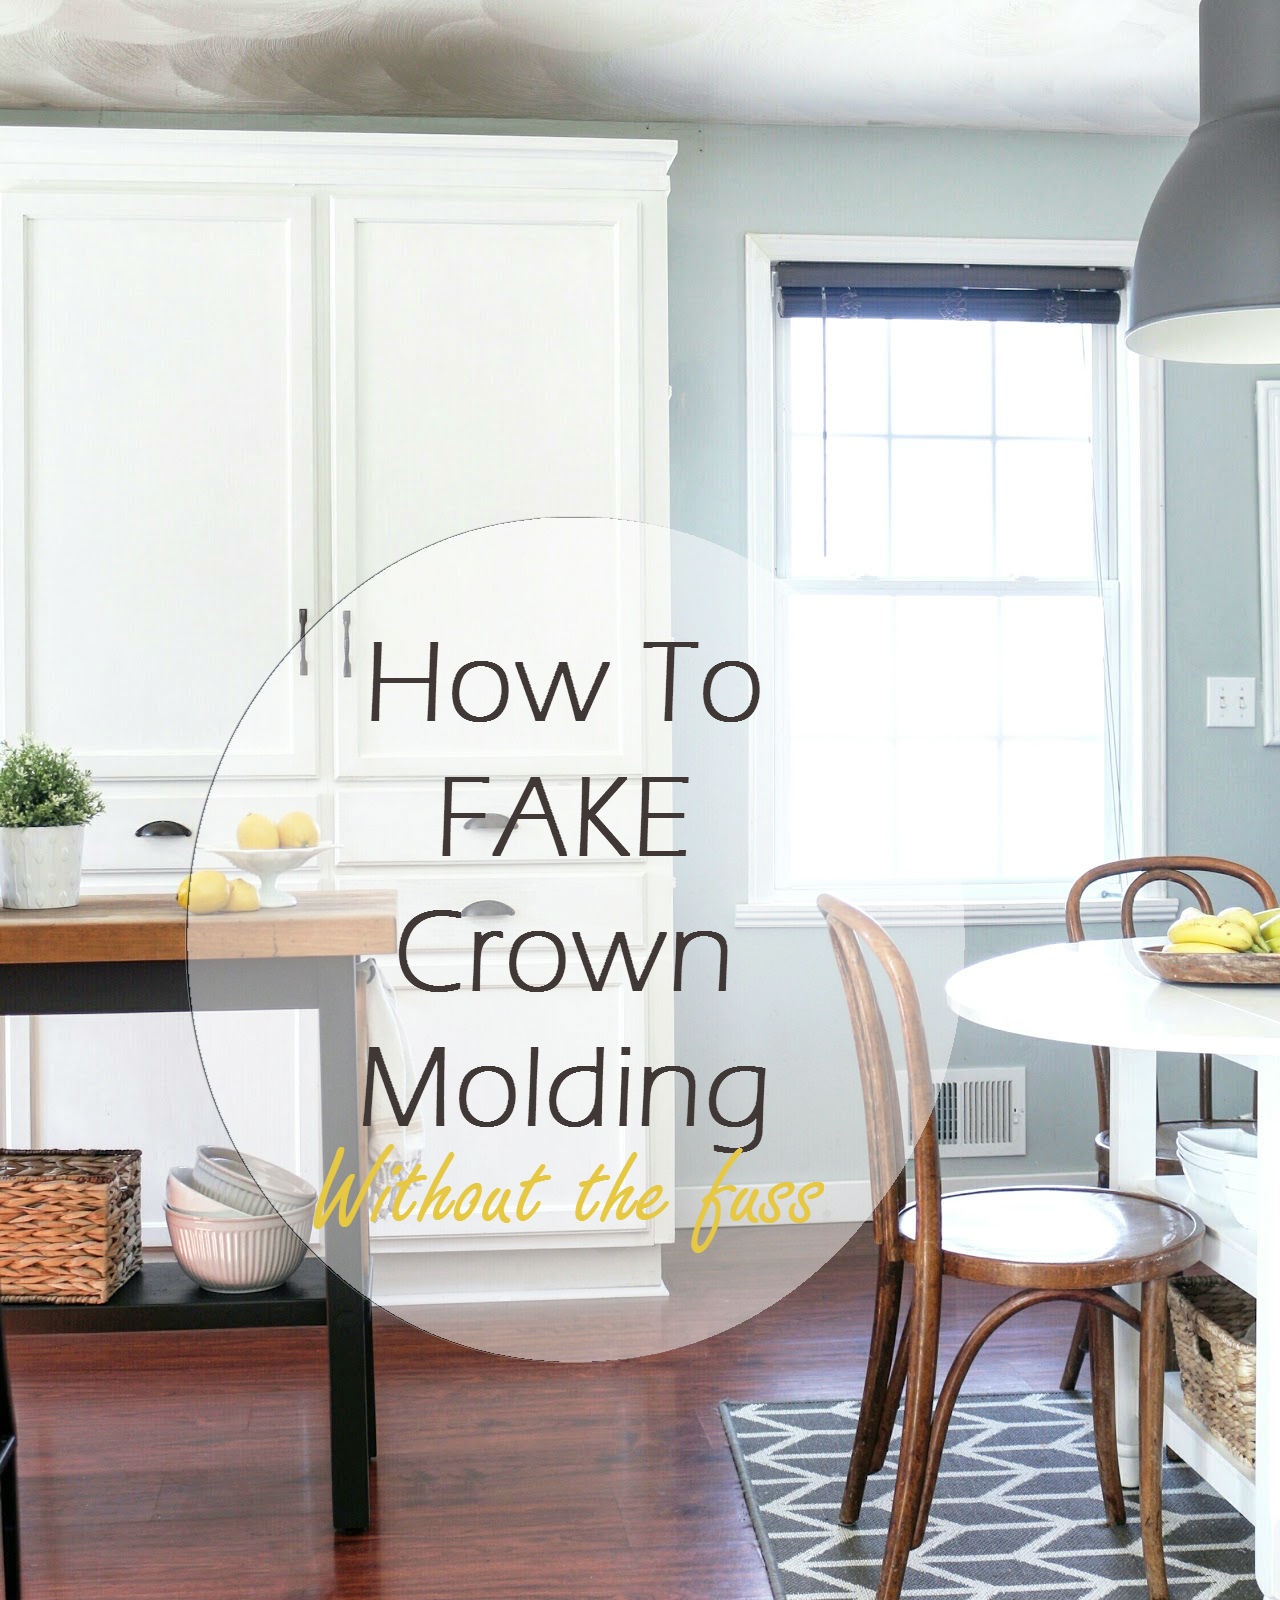 My DIY Kitchen: Cabinet Crown Molding, How to Fake the Look ...